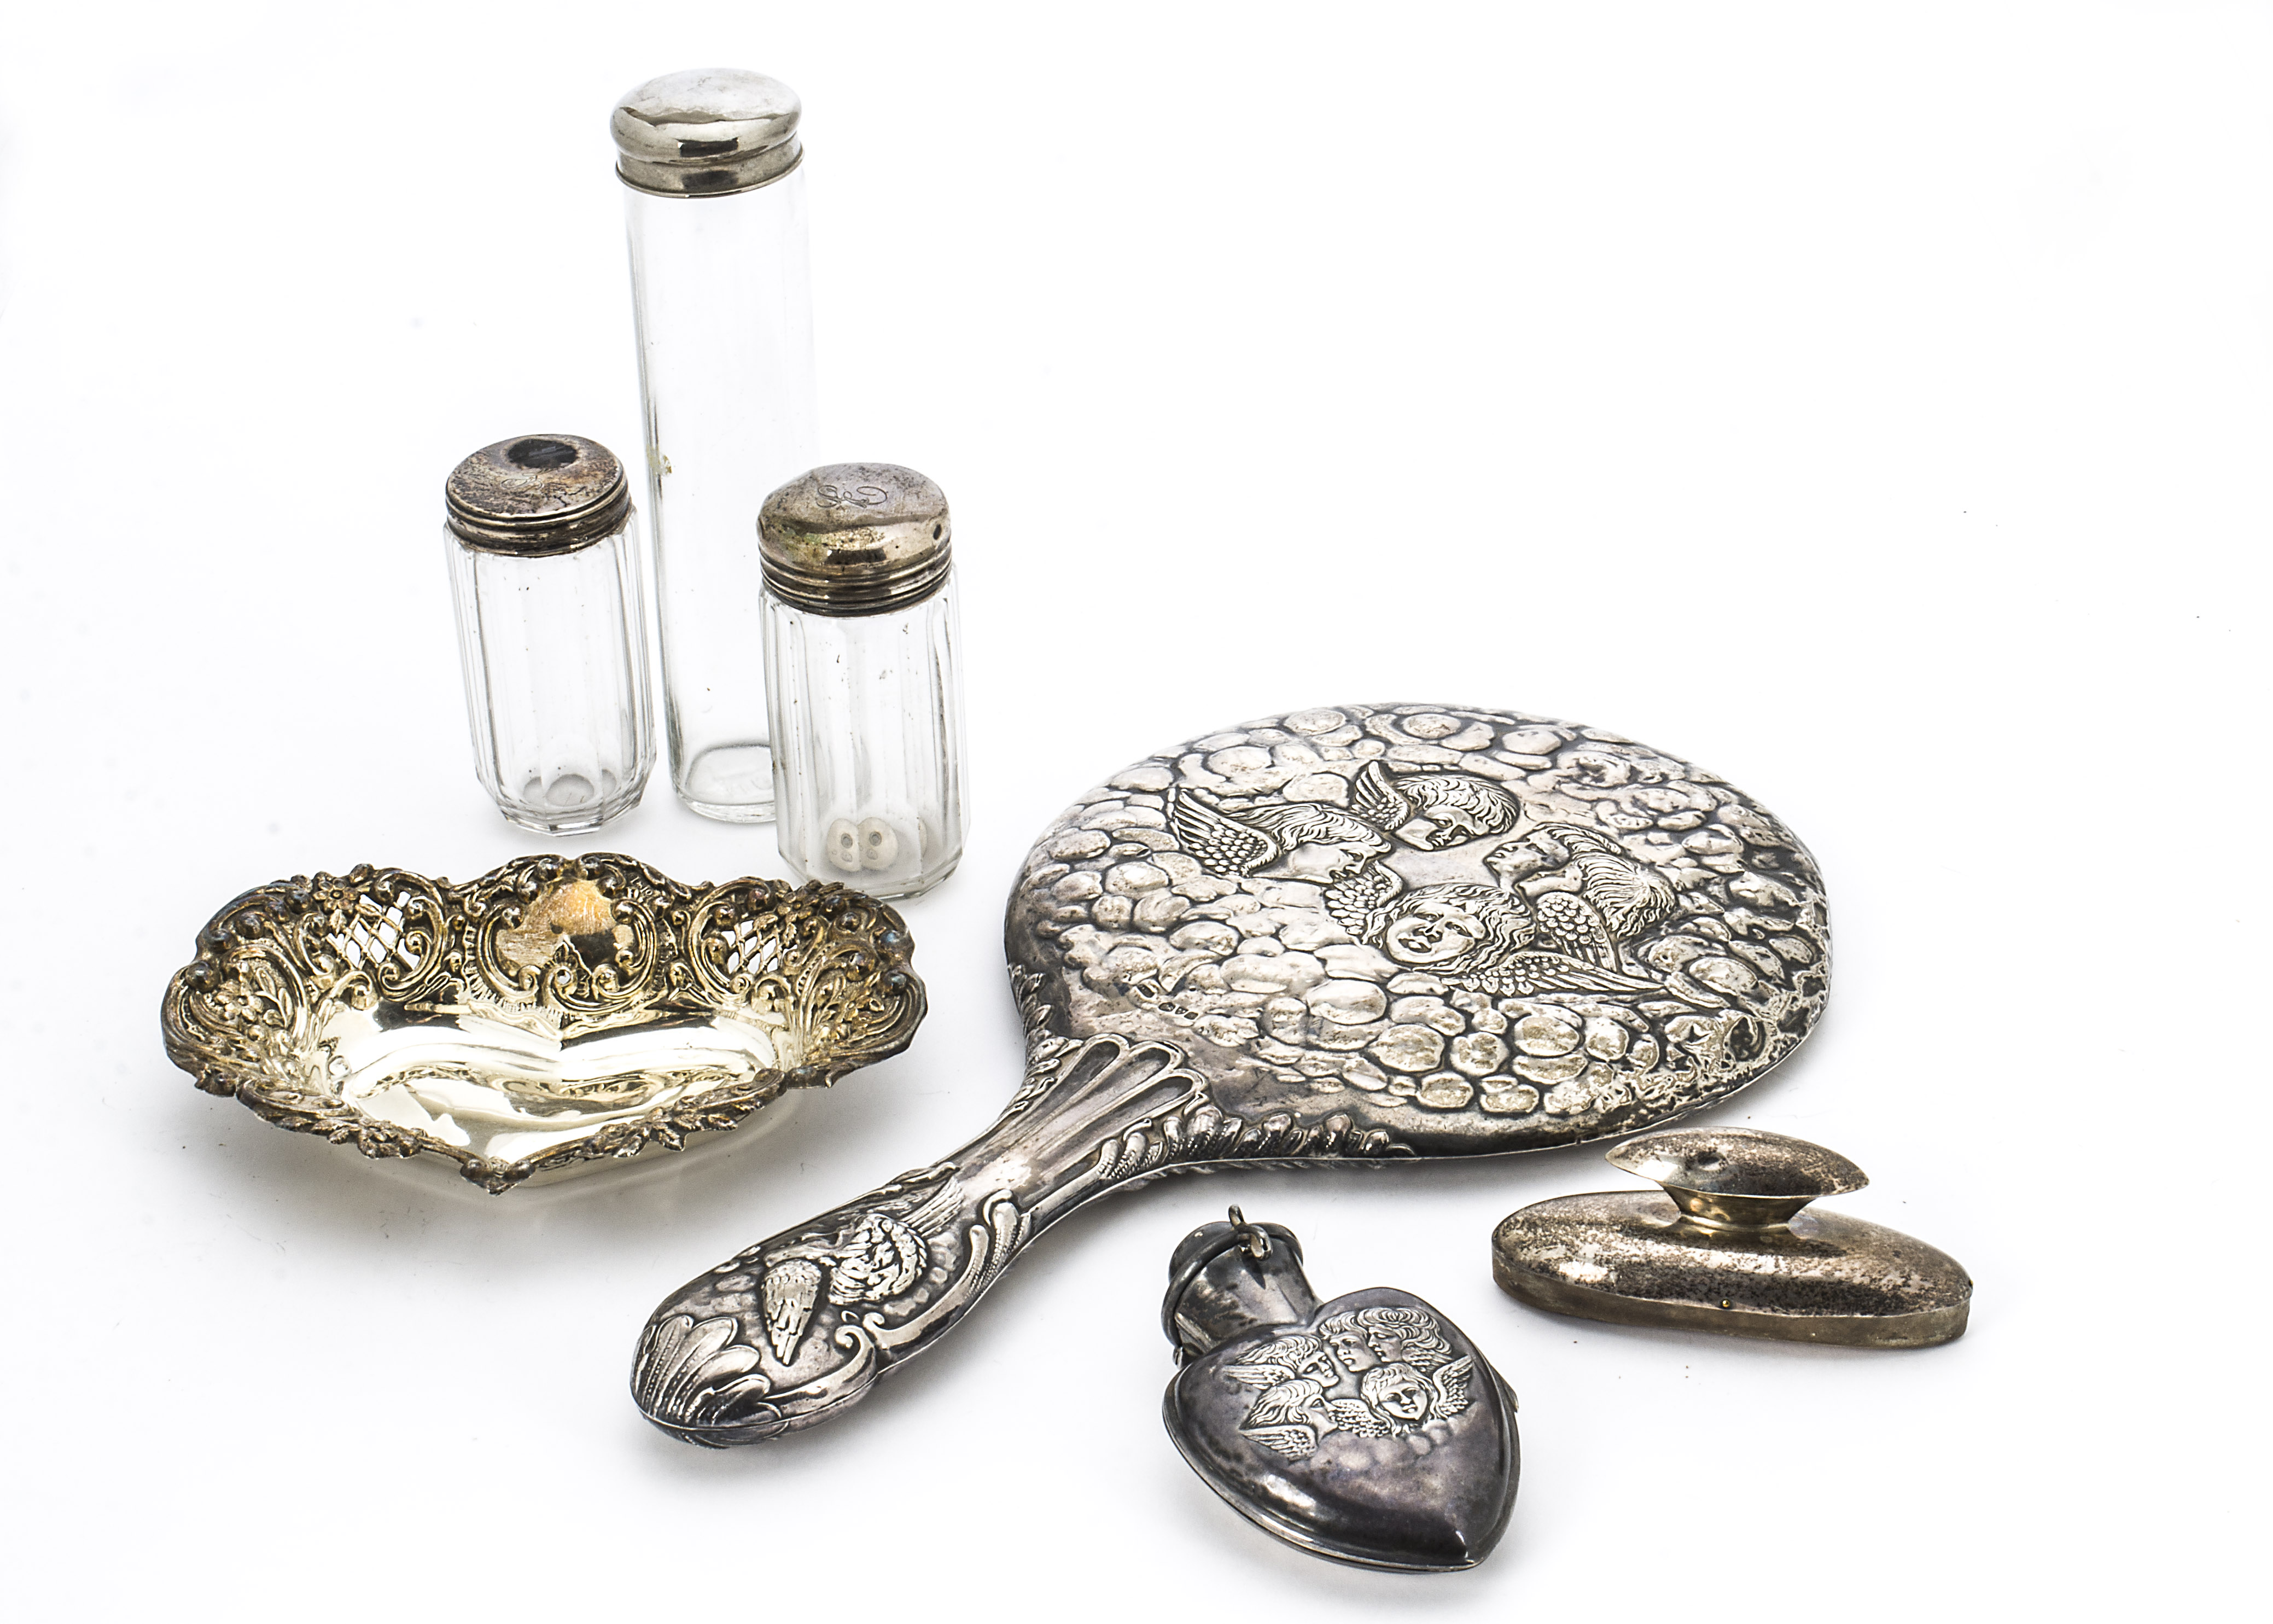 Lot 41 - A Victorian silver hand mirror, together with a silver scent bottle holder lacking its bottle, a